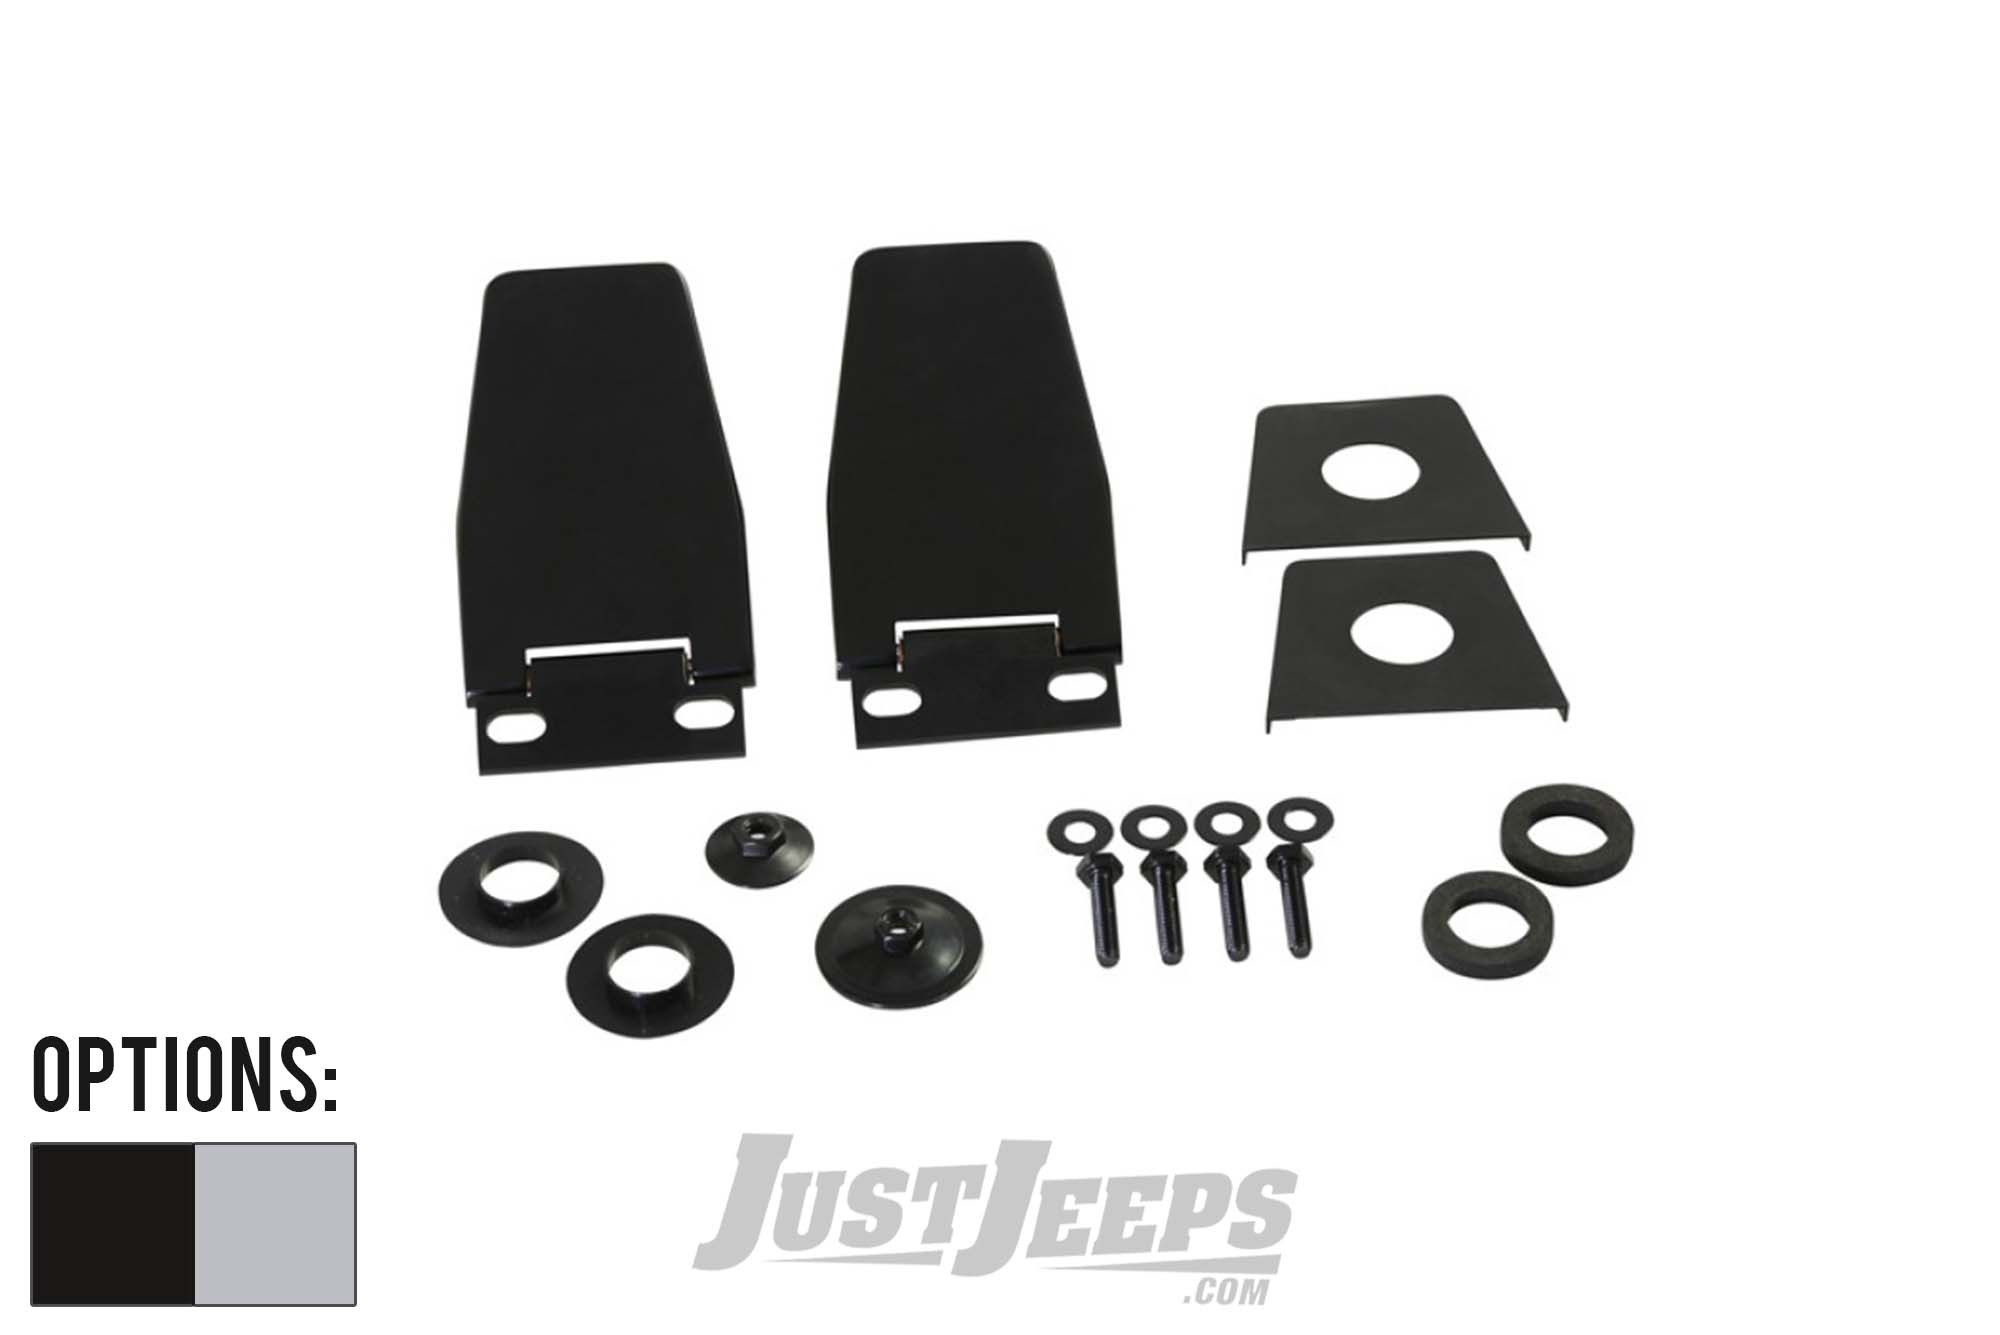 Kentrol Hardtop Stainless Steel Liftgate Hinges For 1987-06 Jeep Wrangler YJ, TJ & TLJ Unlimited Models